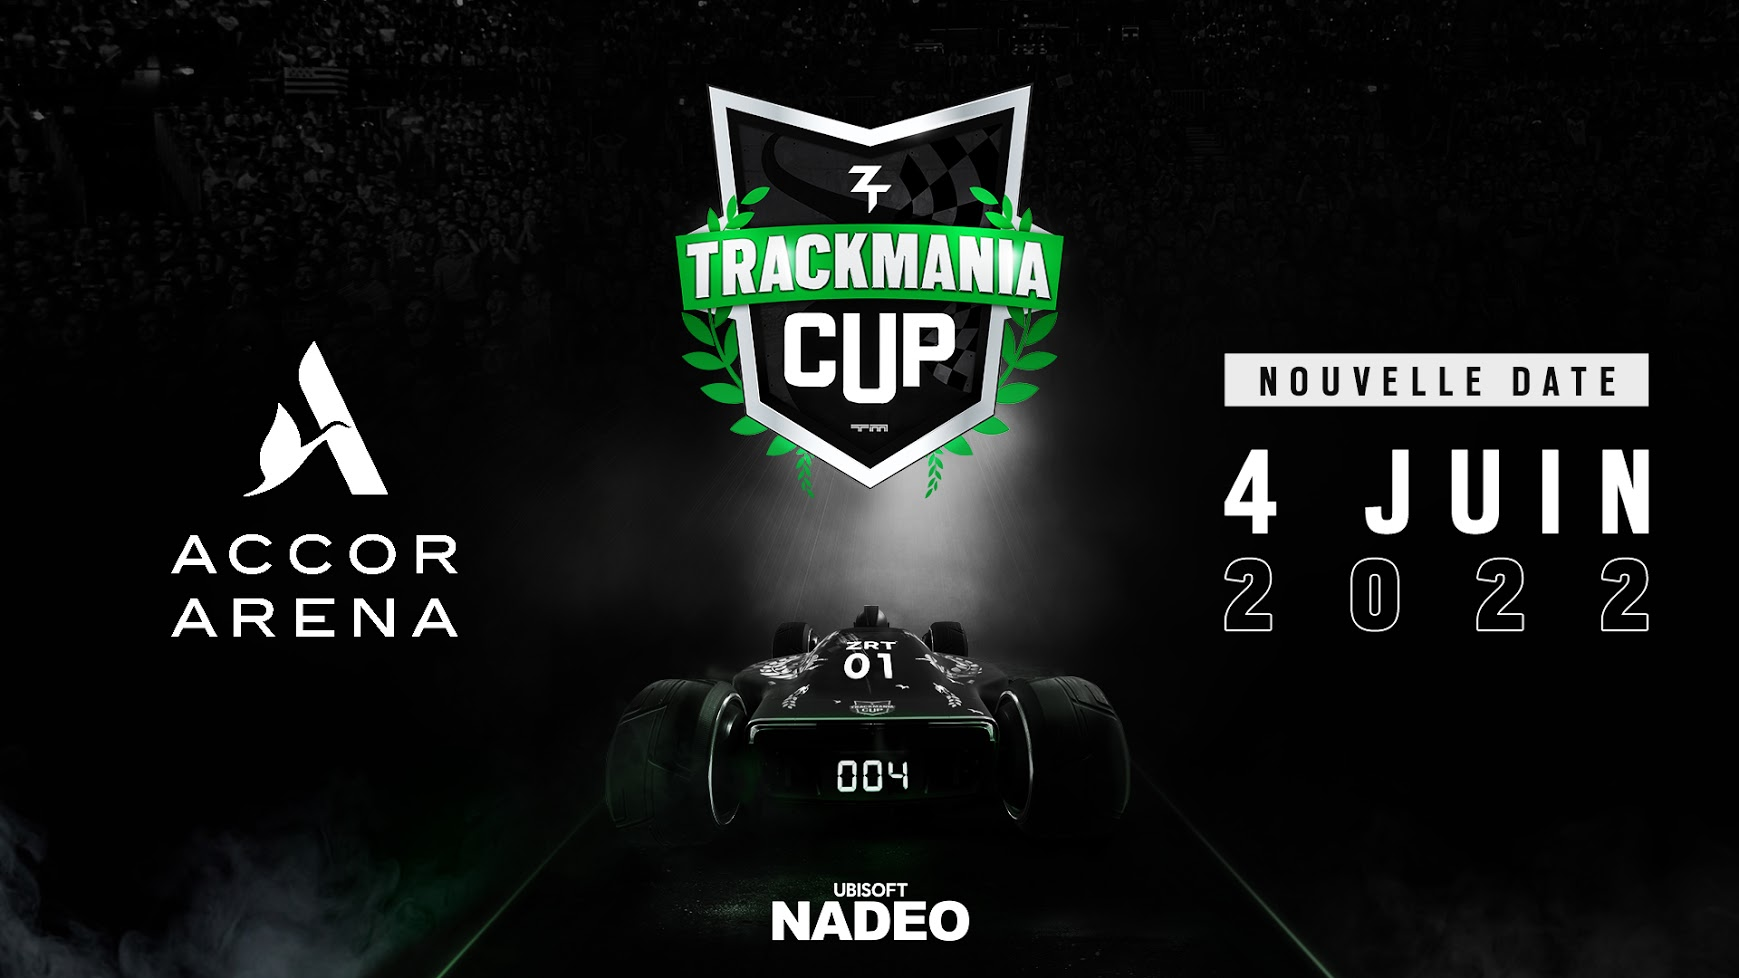 trackmania cup